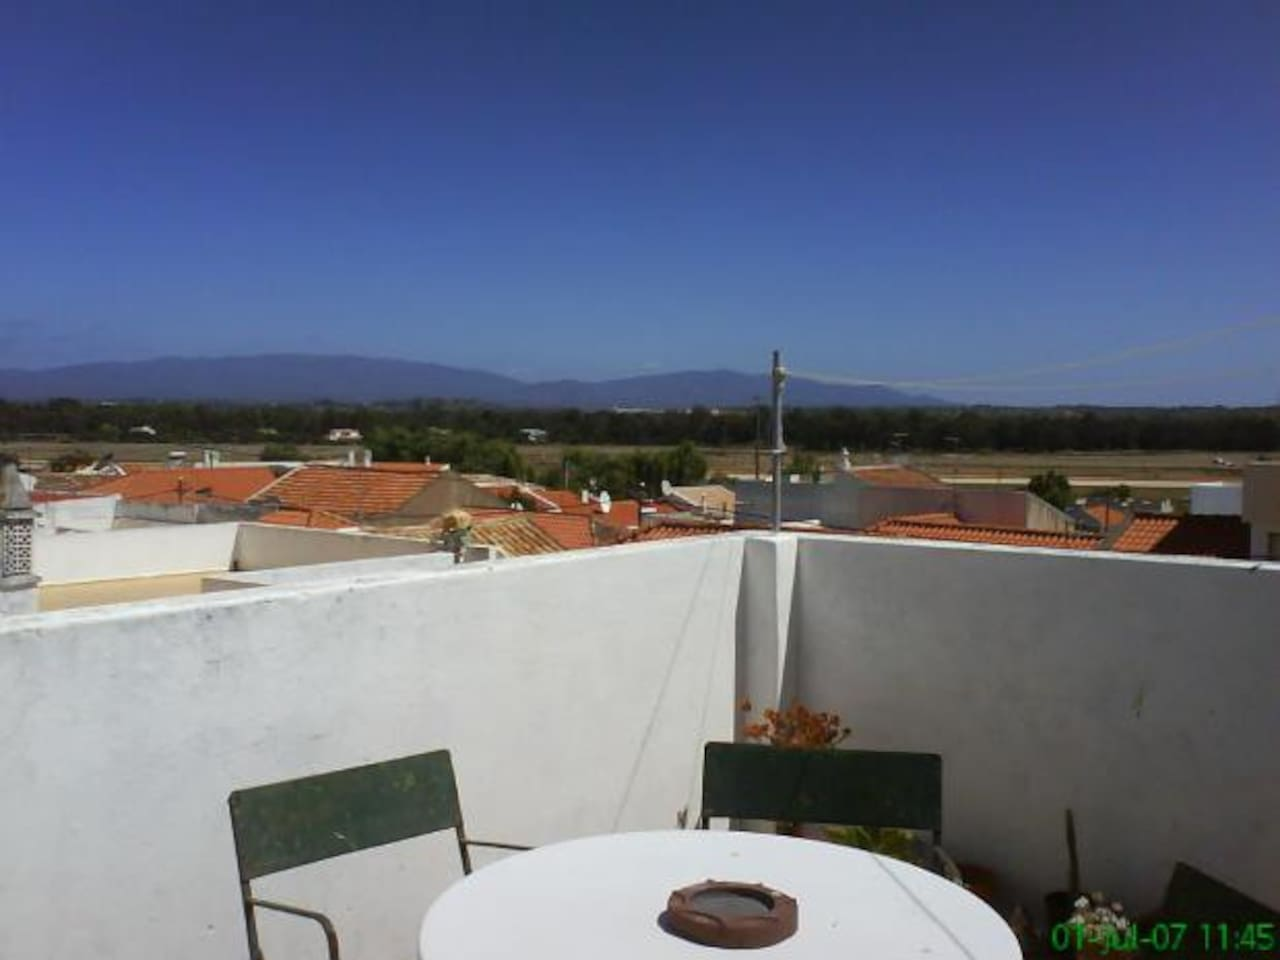 Terrace with view to Monchique Montains ( highest point  of Algarve)